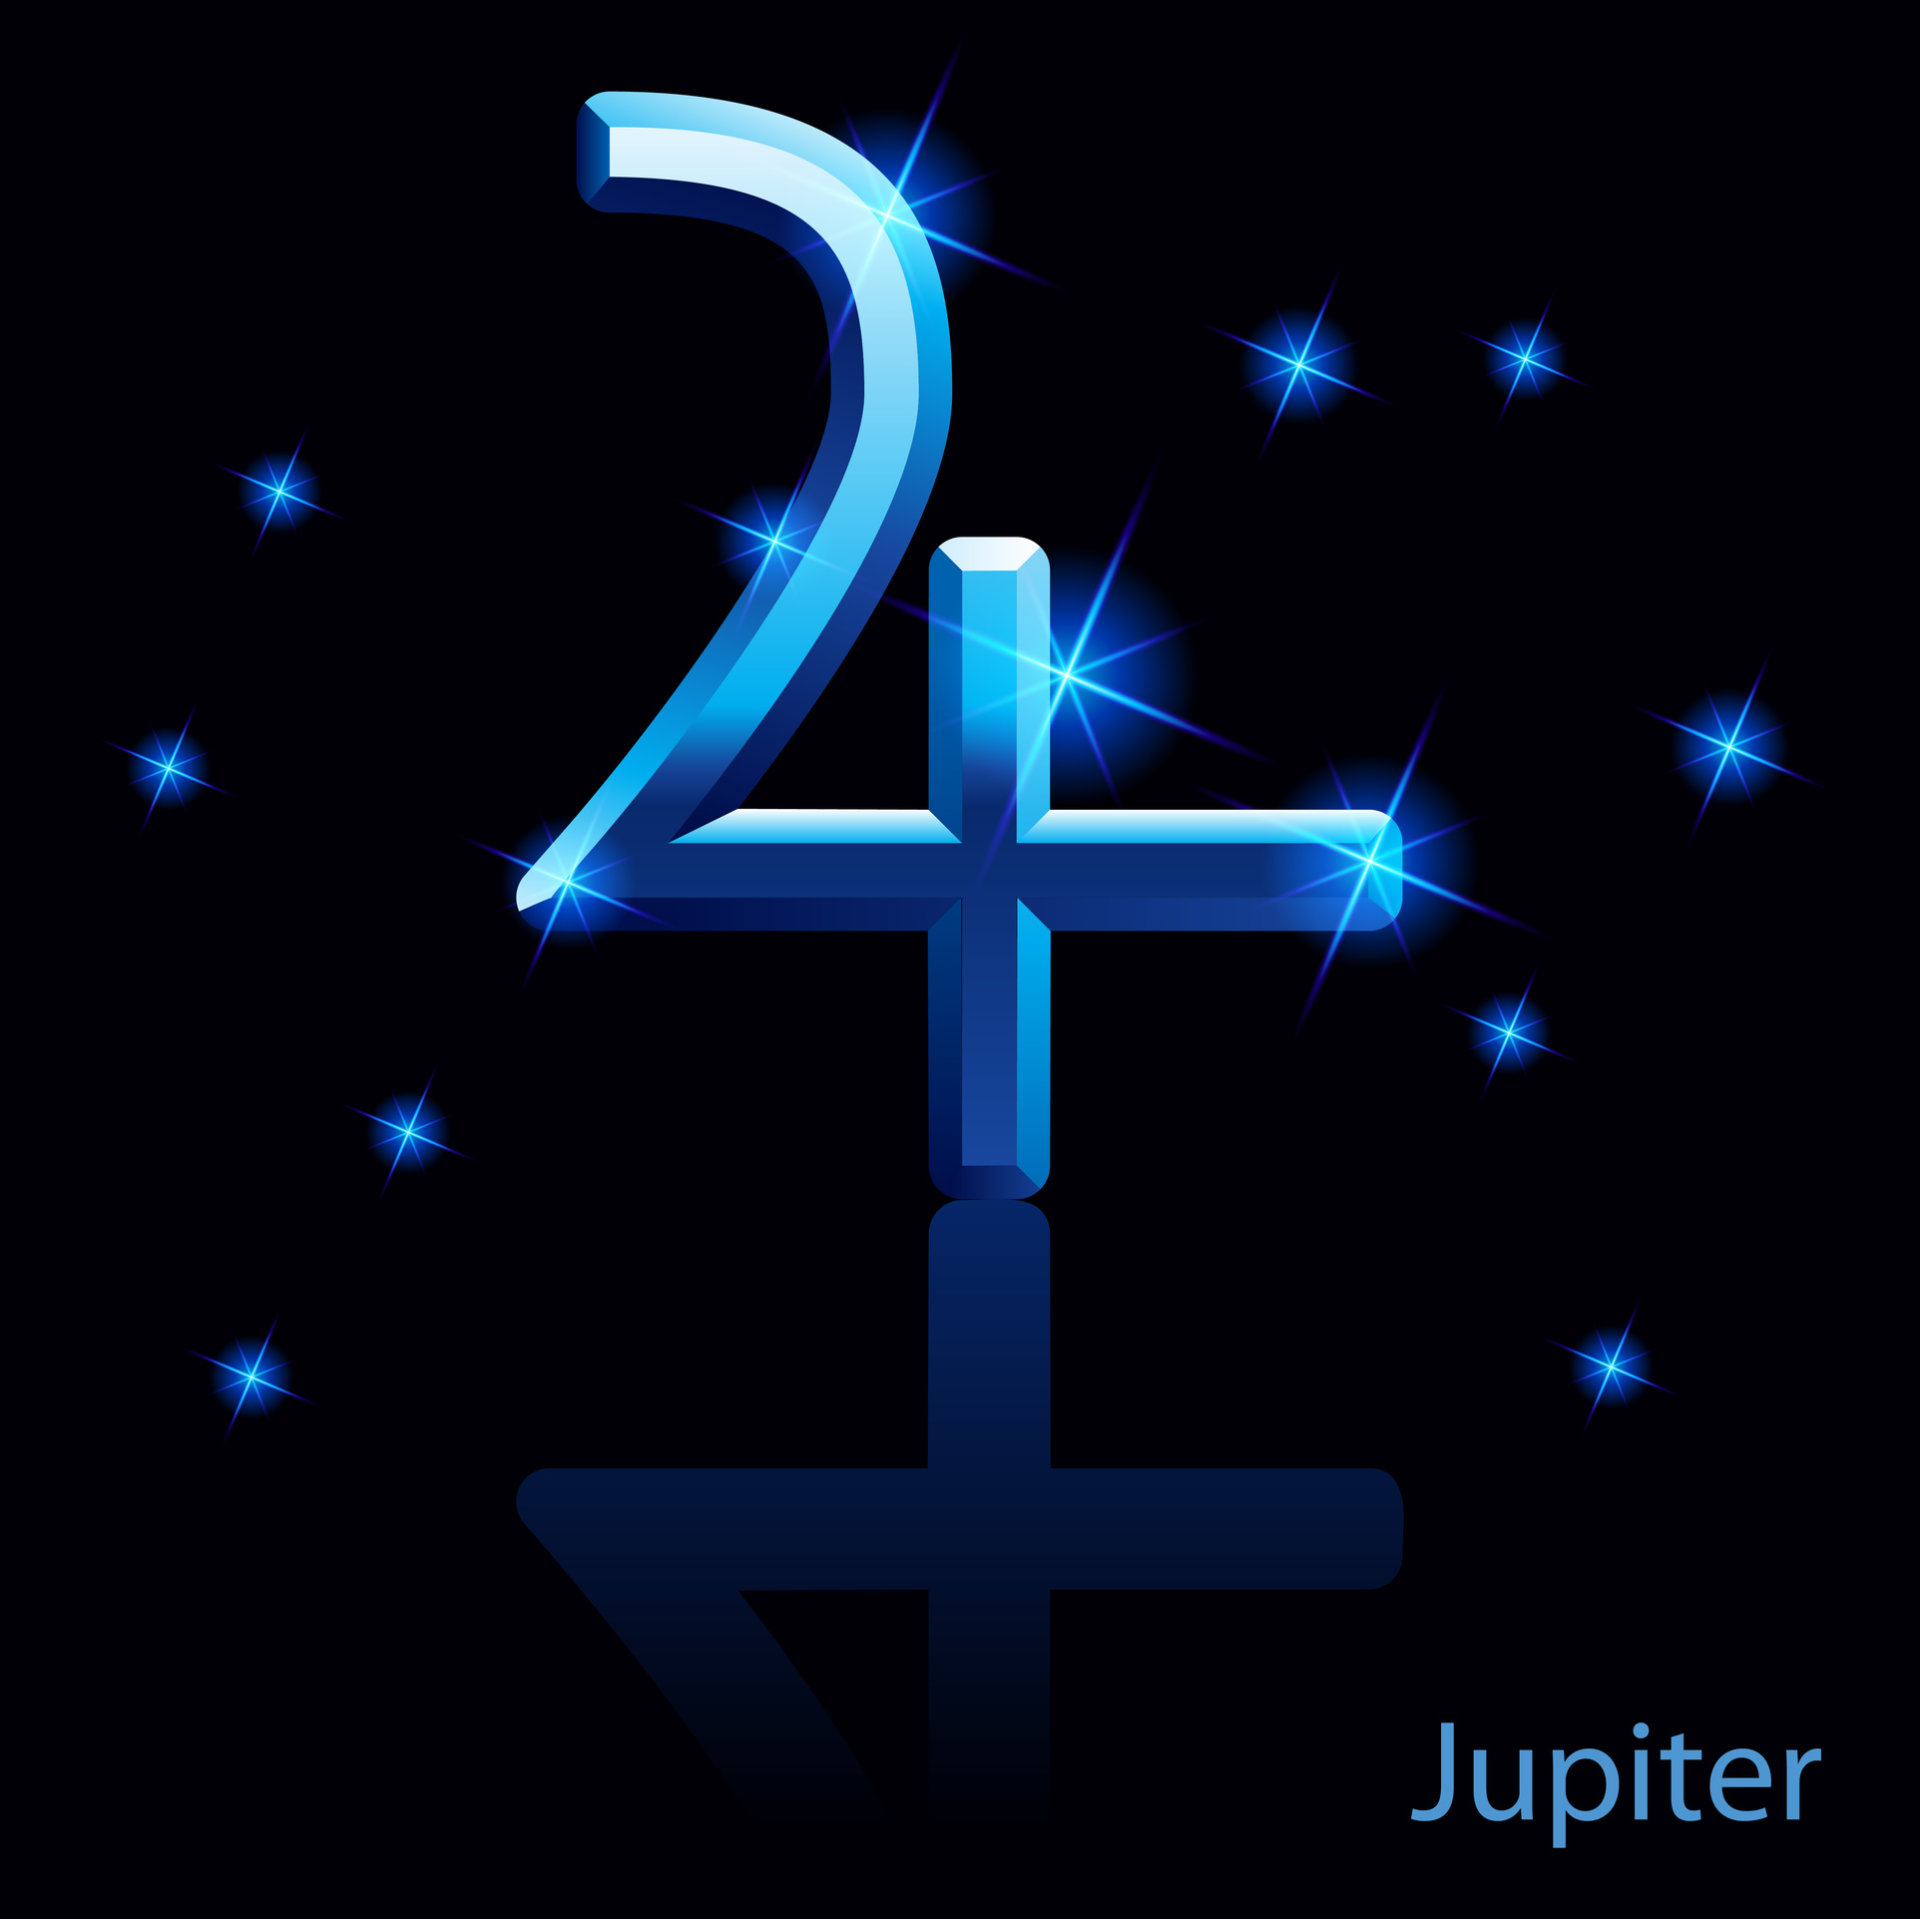 Jupiteris astrologija